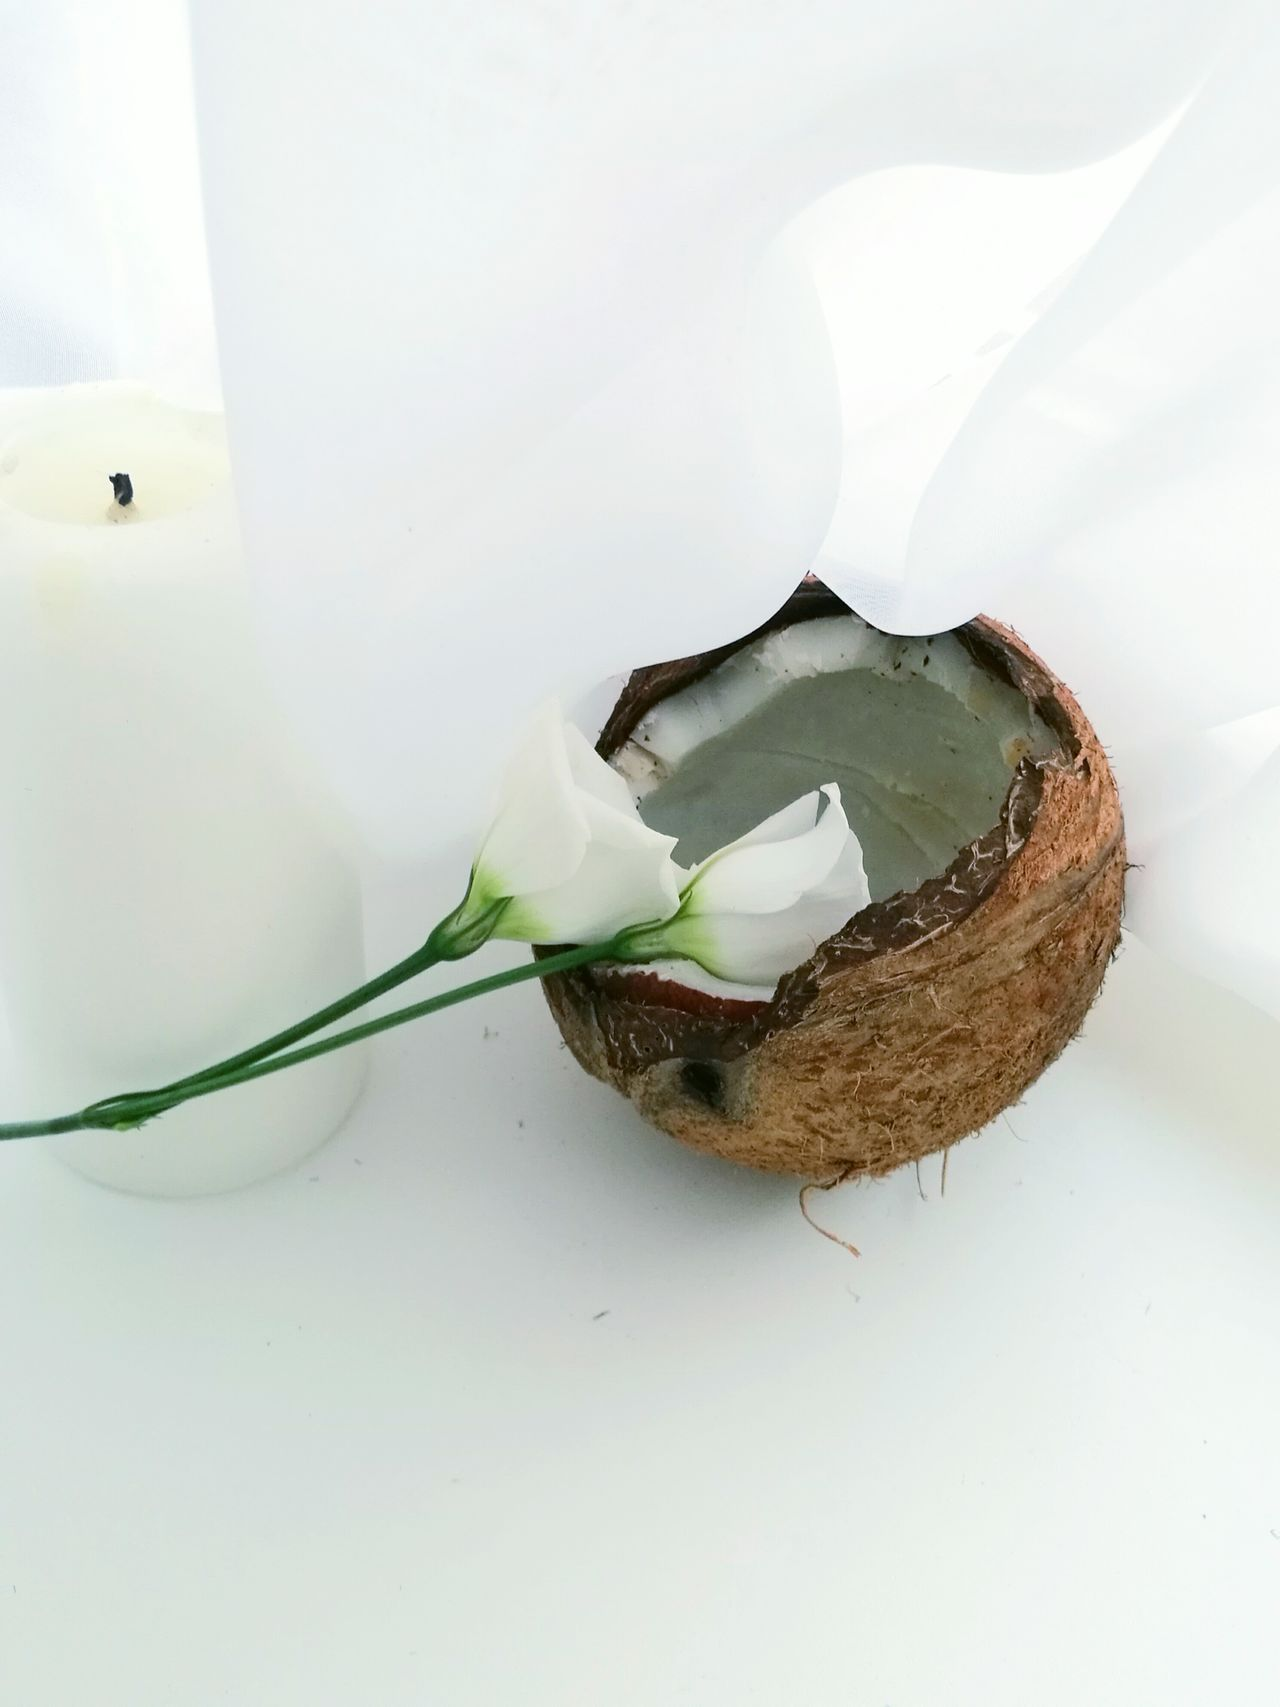 Flower Freshness Indoors  No People Morning Light Morning Food Vegan Coconut White Color Composition Candle Mood Positive